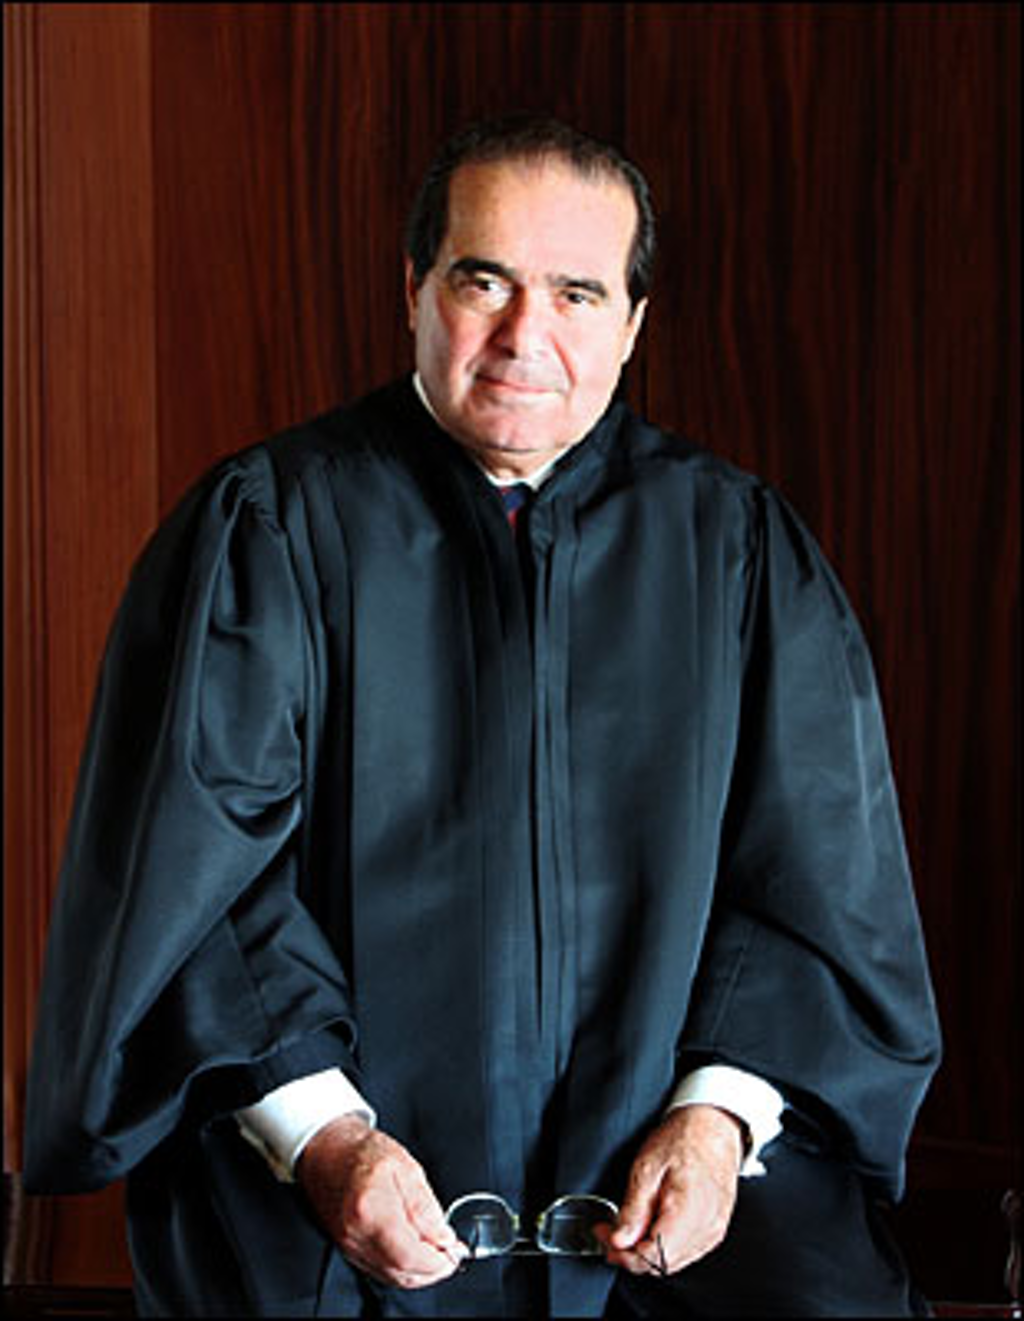 Associate Justice Antonin Scalia (1937-2016)